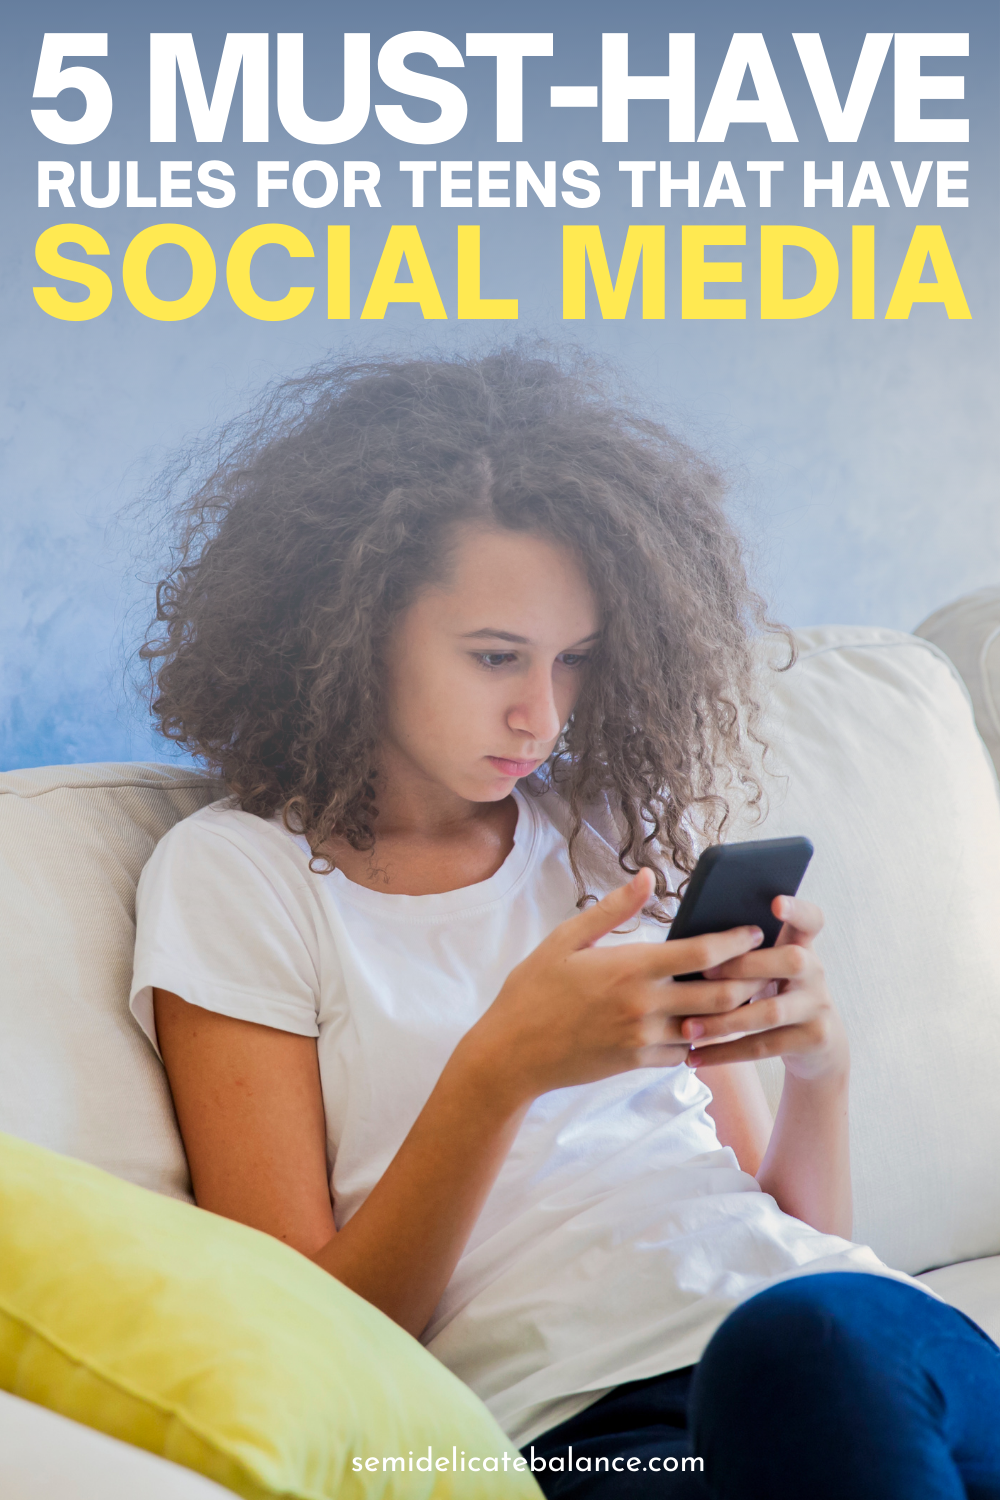 5 Must-Have Rules When Your Children Have Their Own Social Media Accounts